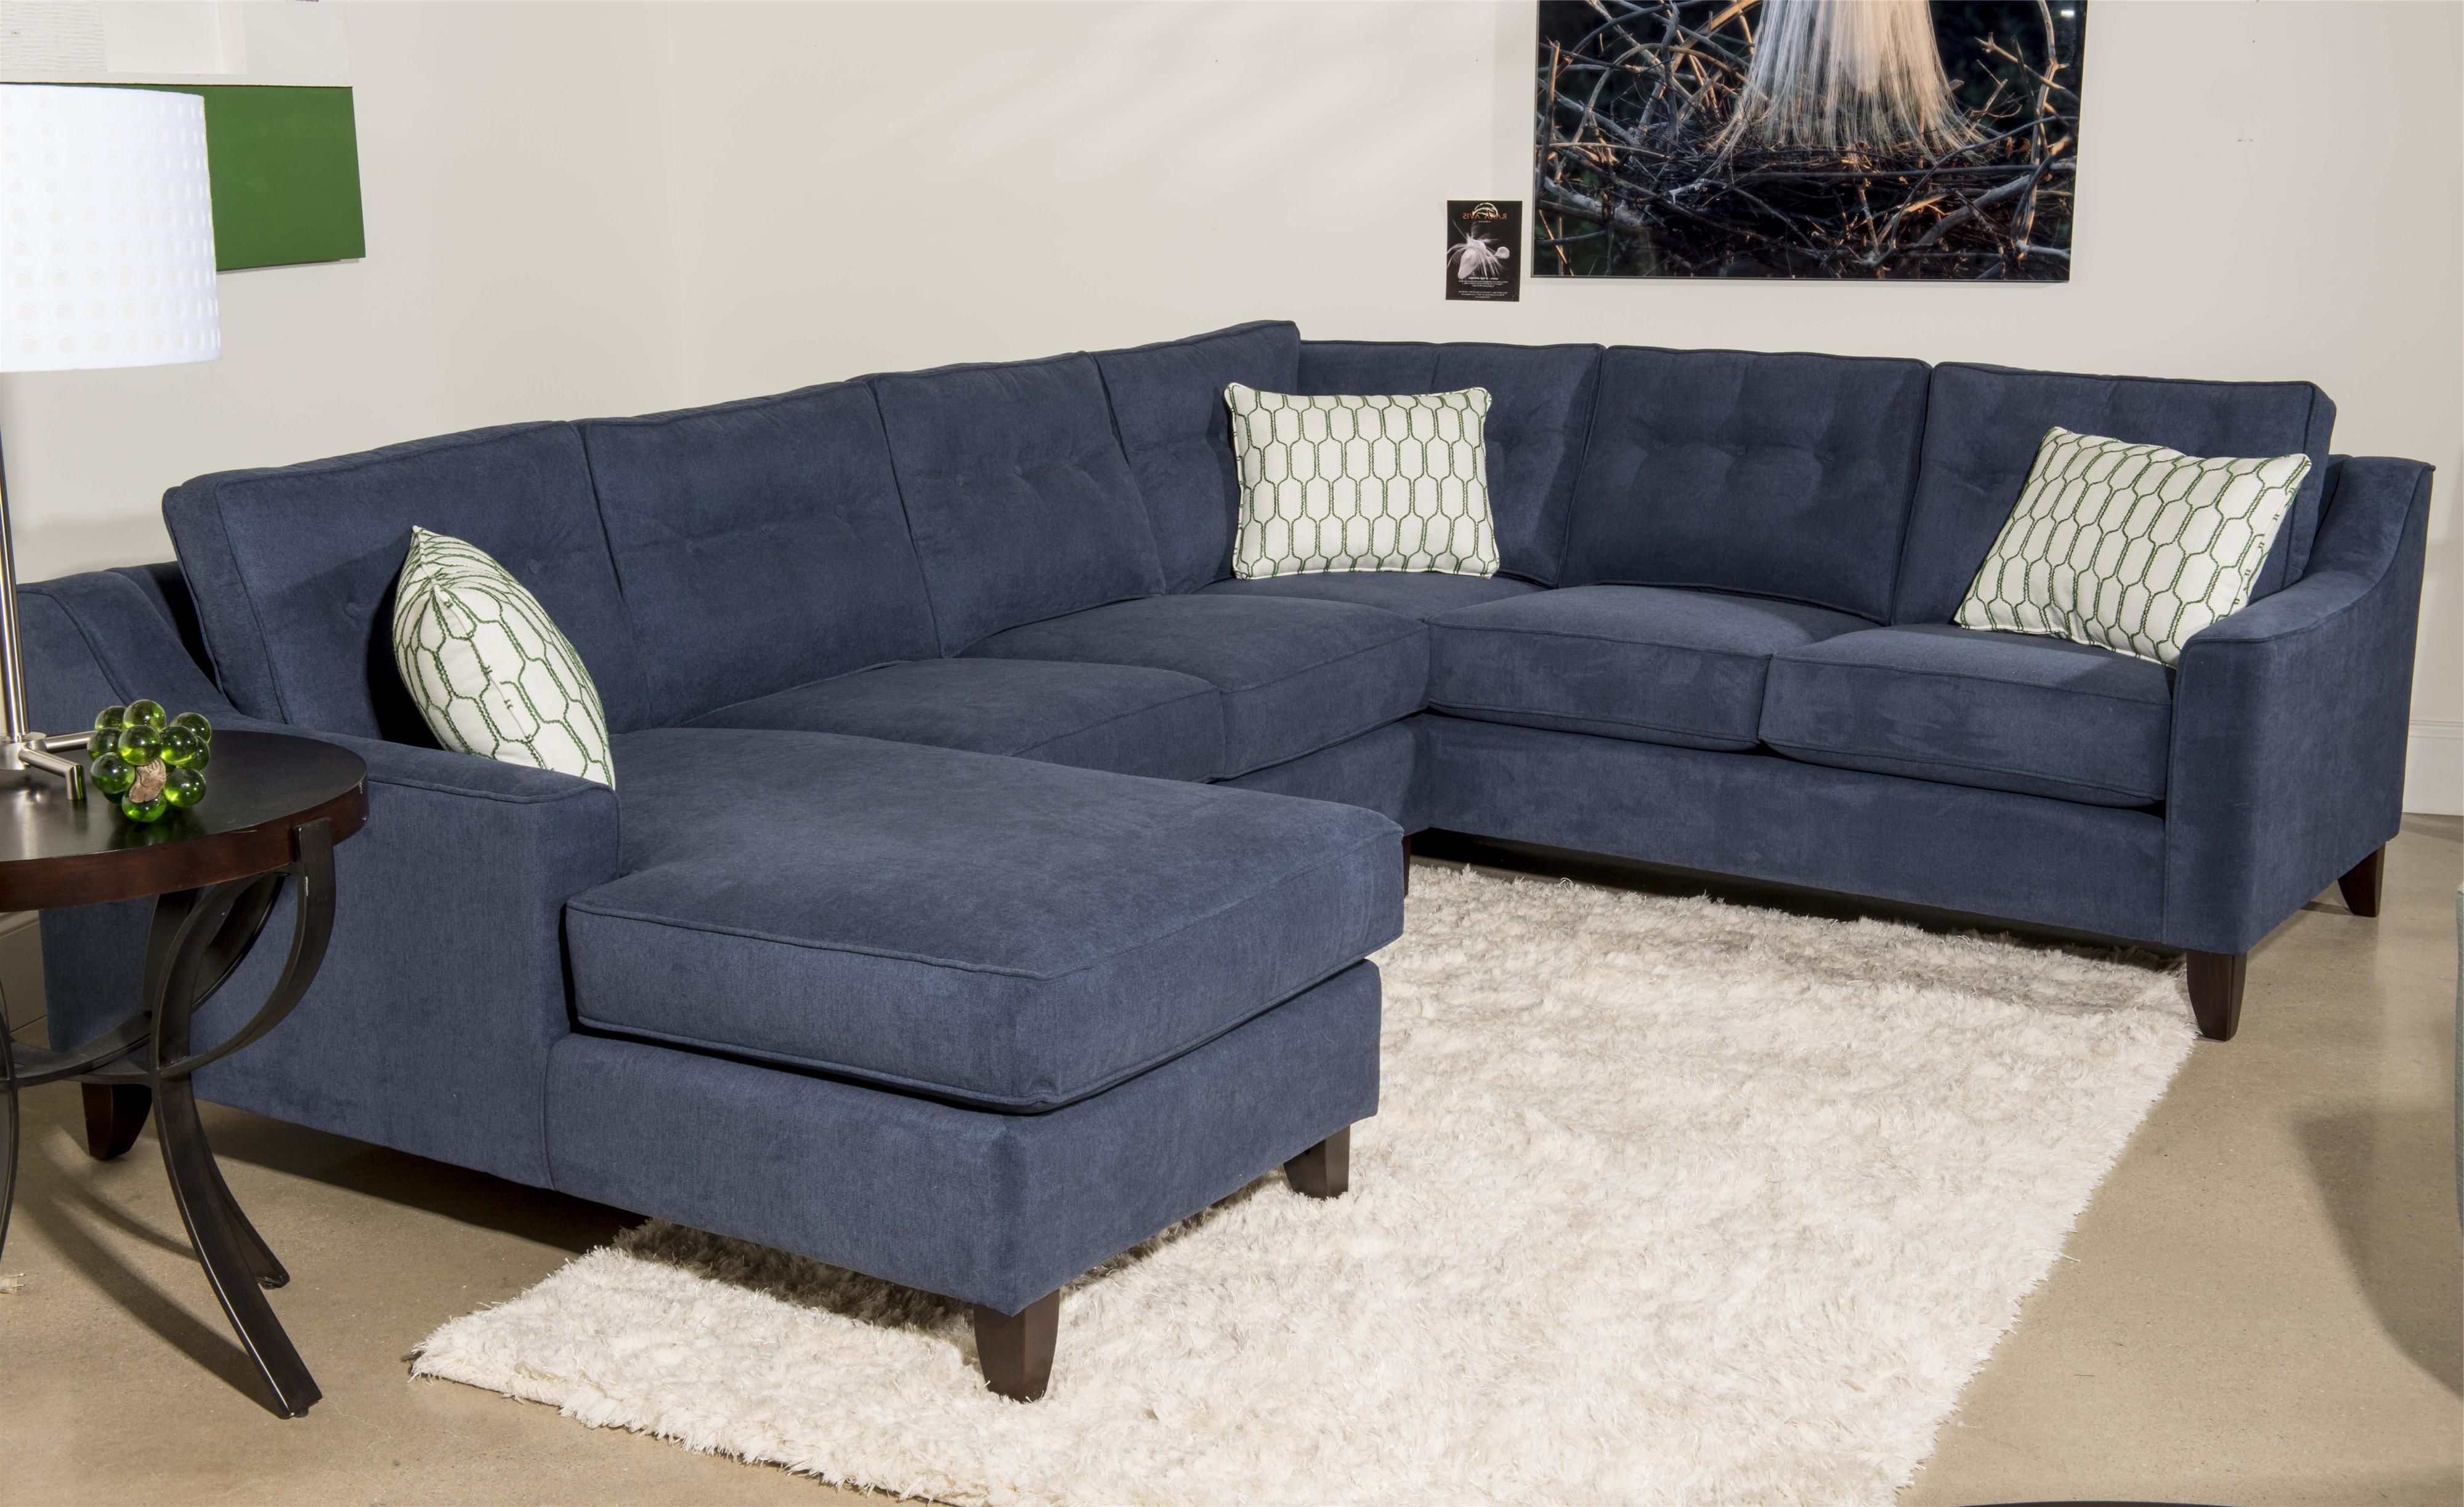 Sectional Sofas With Chaise In Well Liked Costco Living Room Furniture Small Sectional Sofas For Small (View 11 of 20)